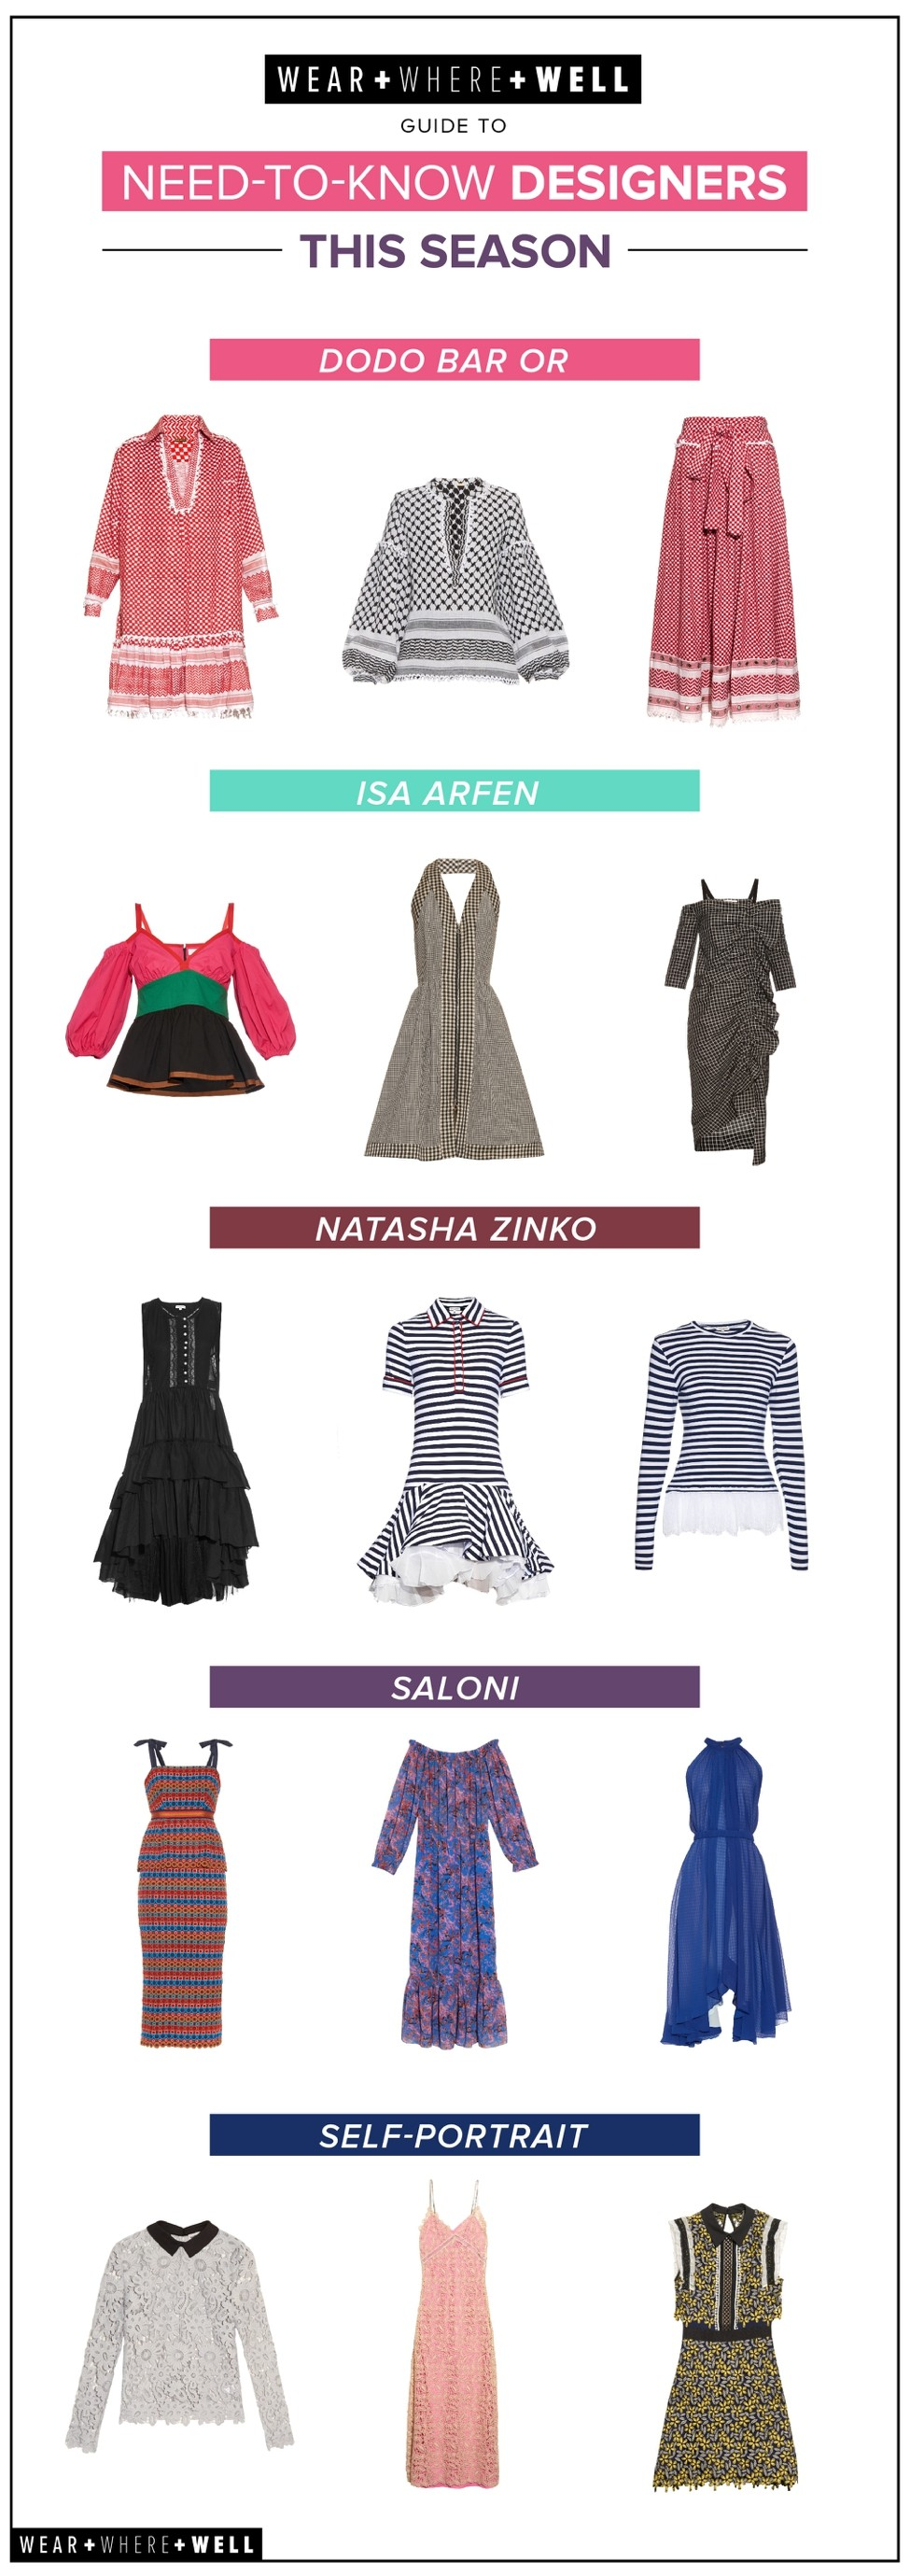 5 Need To Know Designers For Spring 2016 Carrie Colbert Five That I Am Loving This Each Of These Has Something Unique And Fresh Add Your Wardrobe